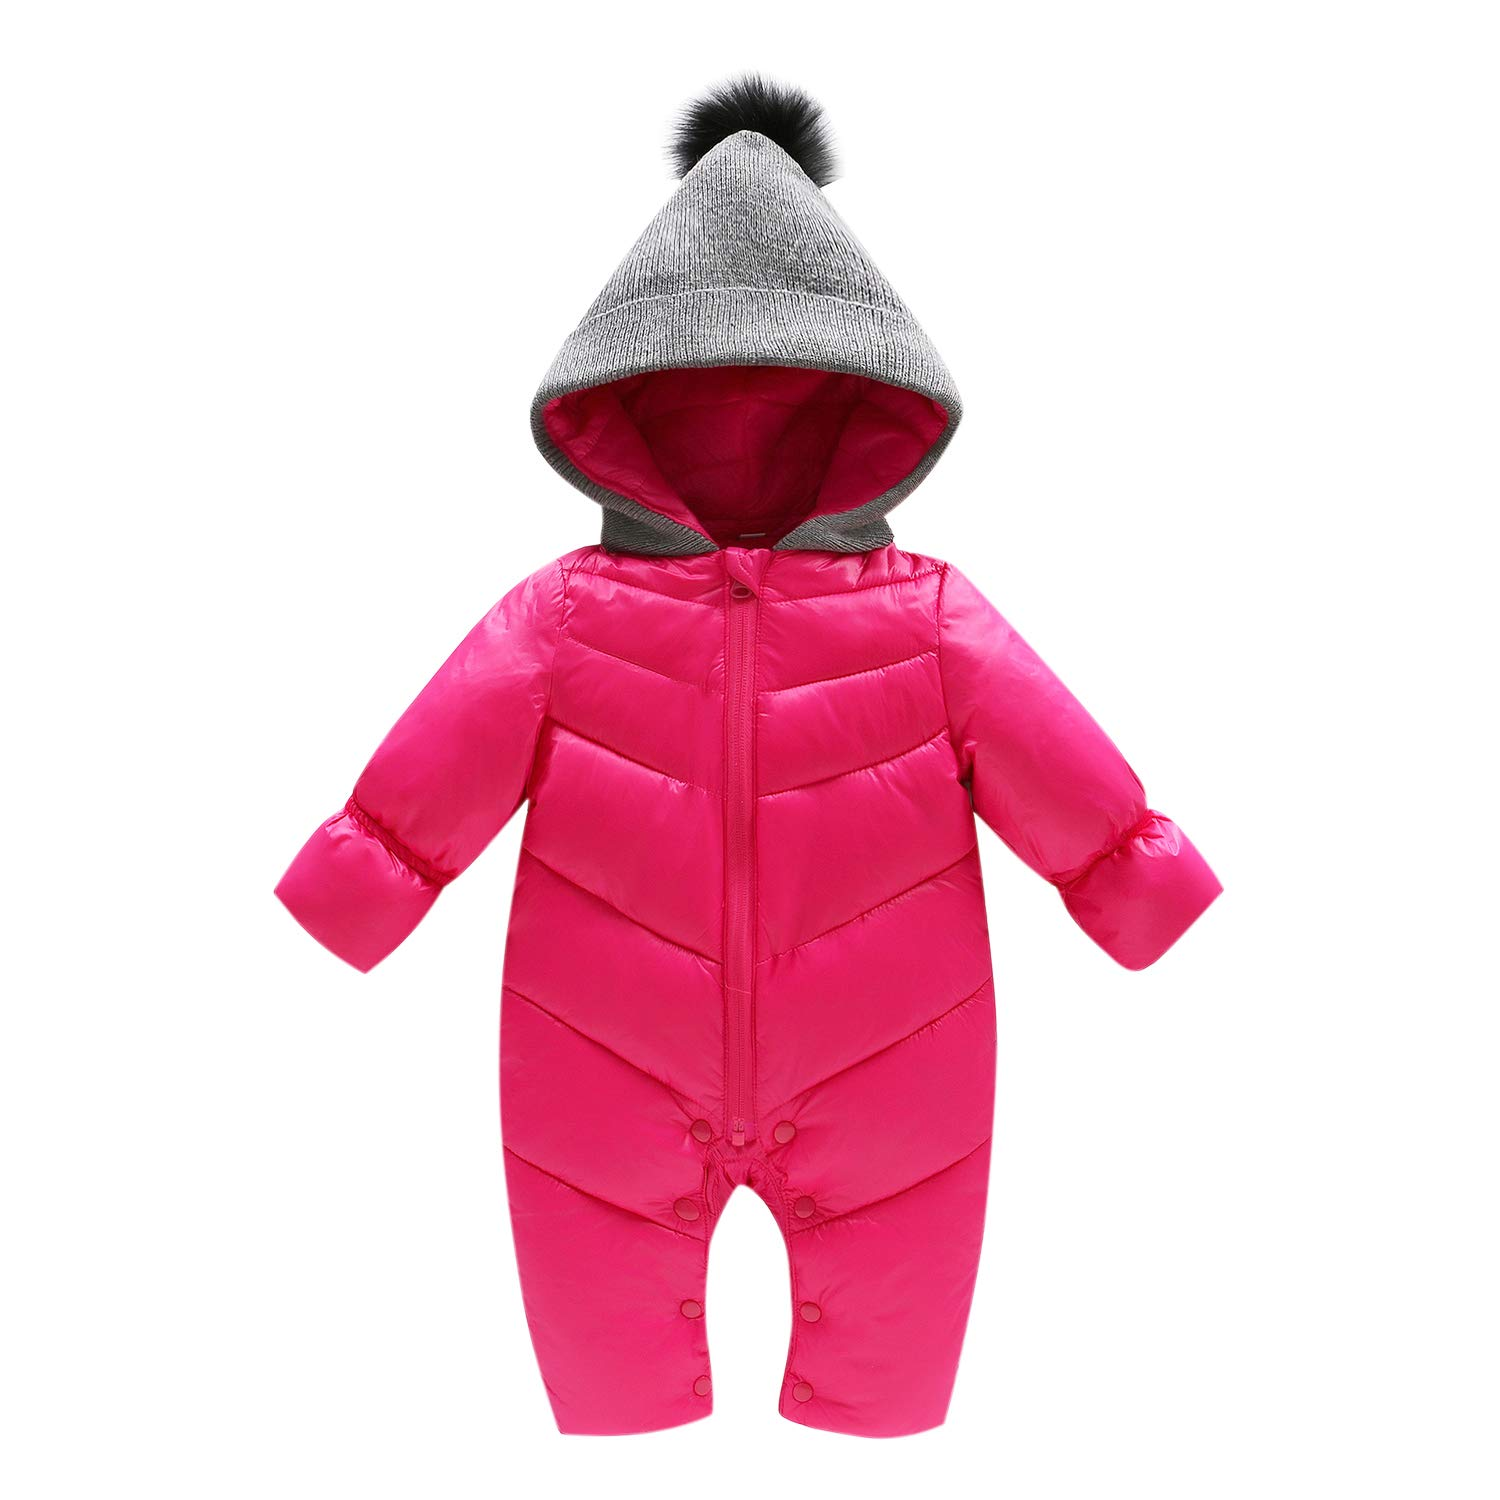 Evelin LEE Baby Girls Boys Puffer Down Jackets One Piece Cable Hood Snowsuit Jumpsuit 05BFA0421-ZL